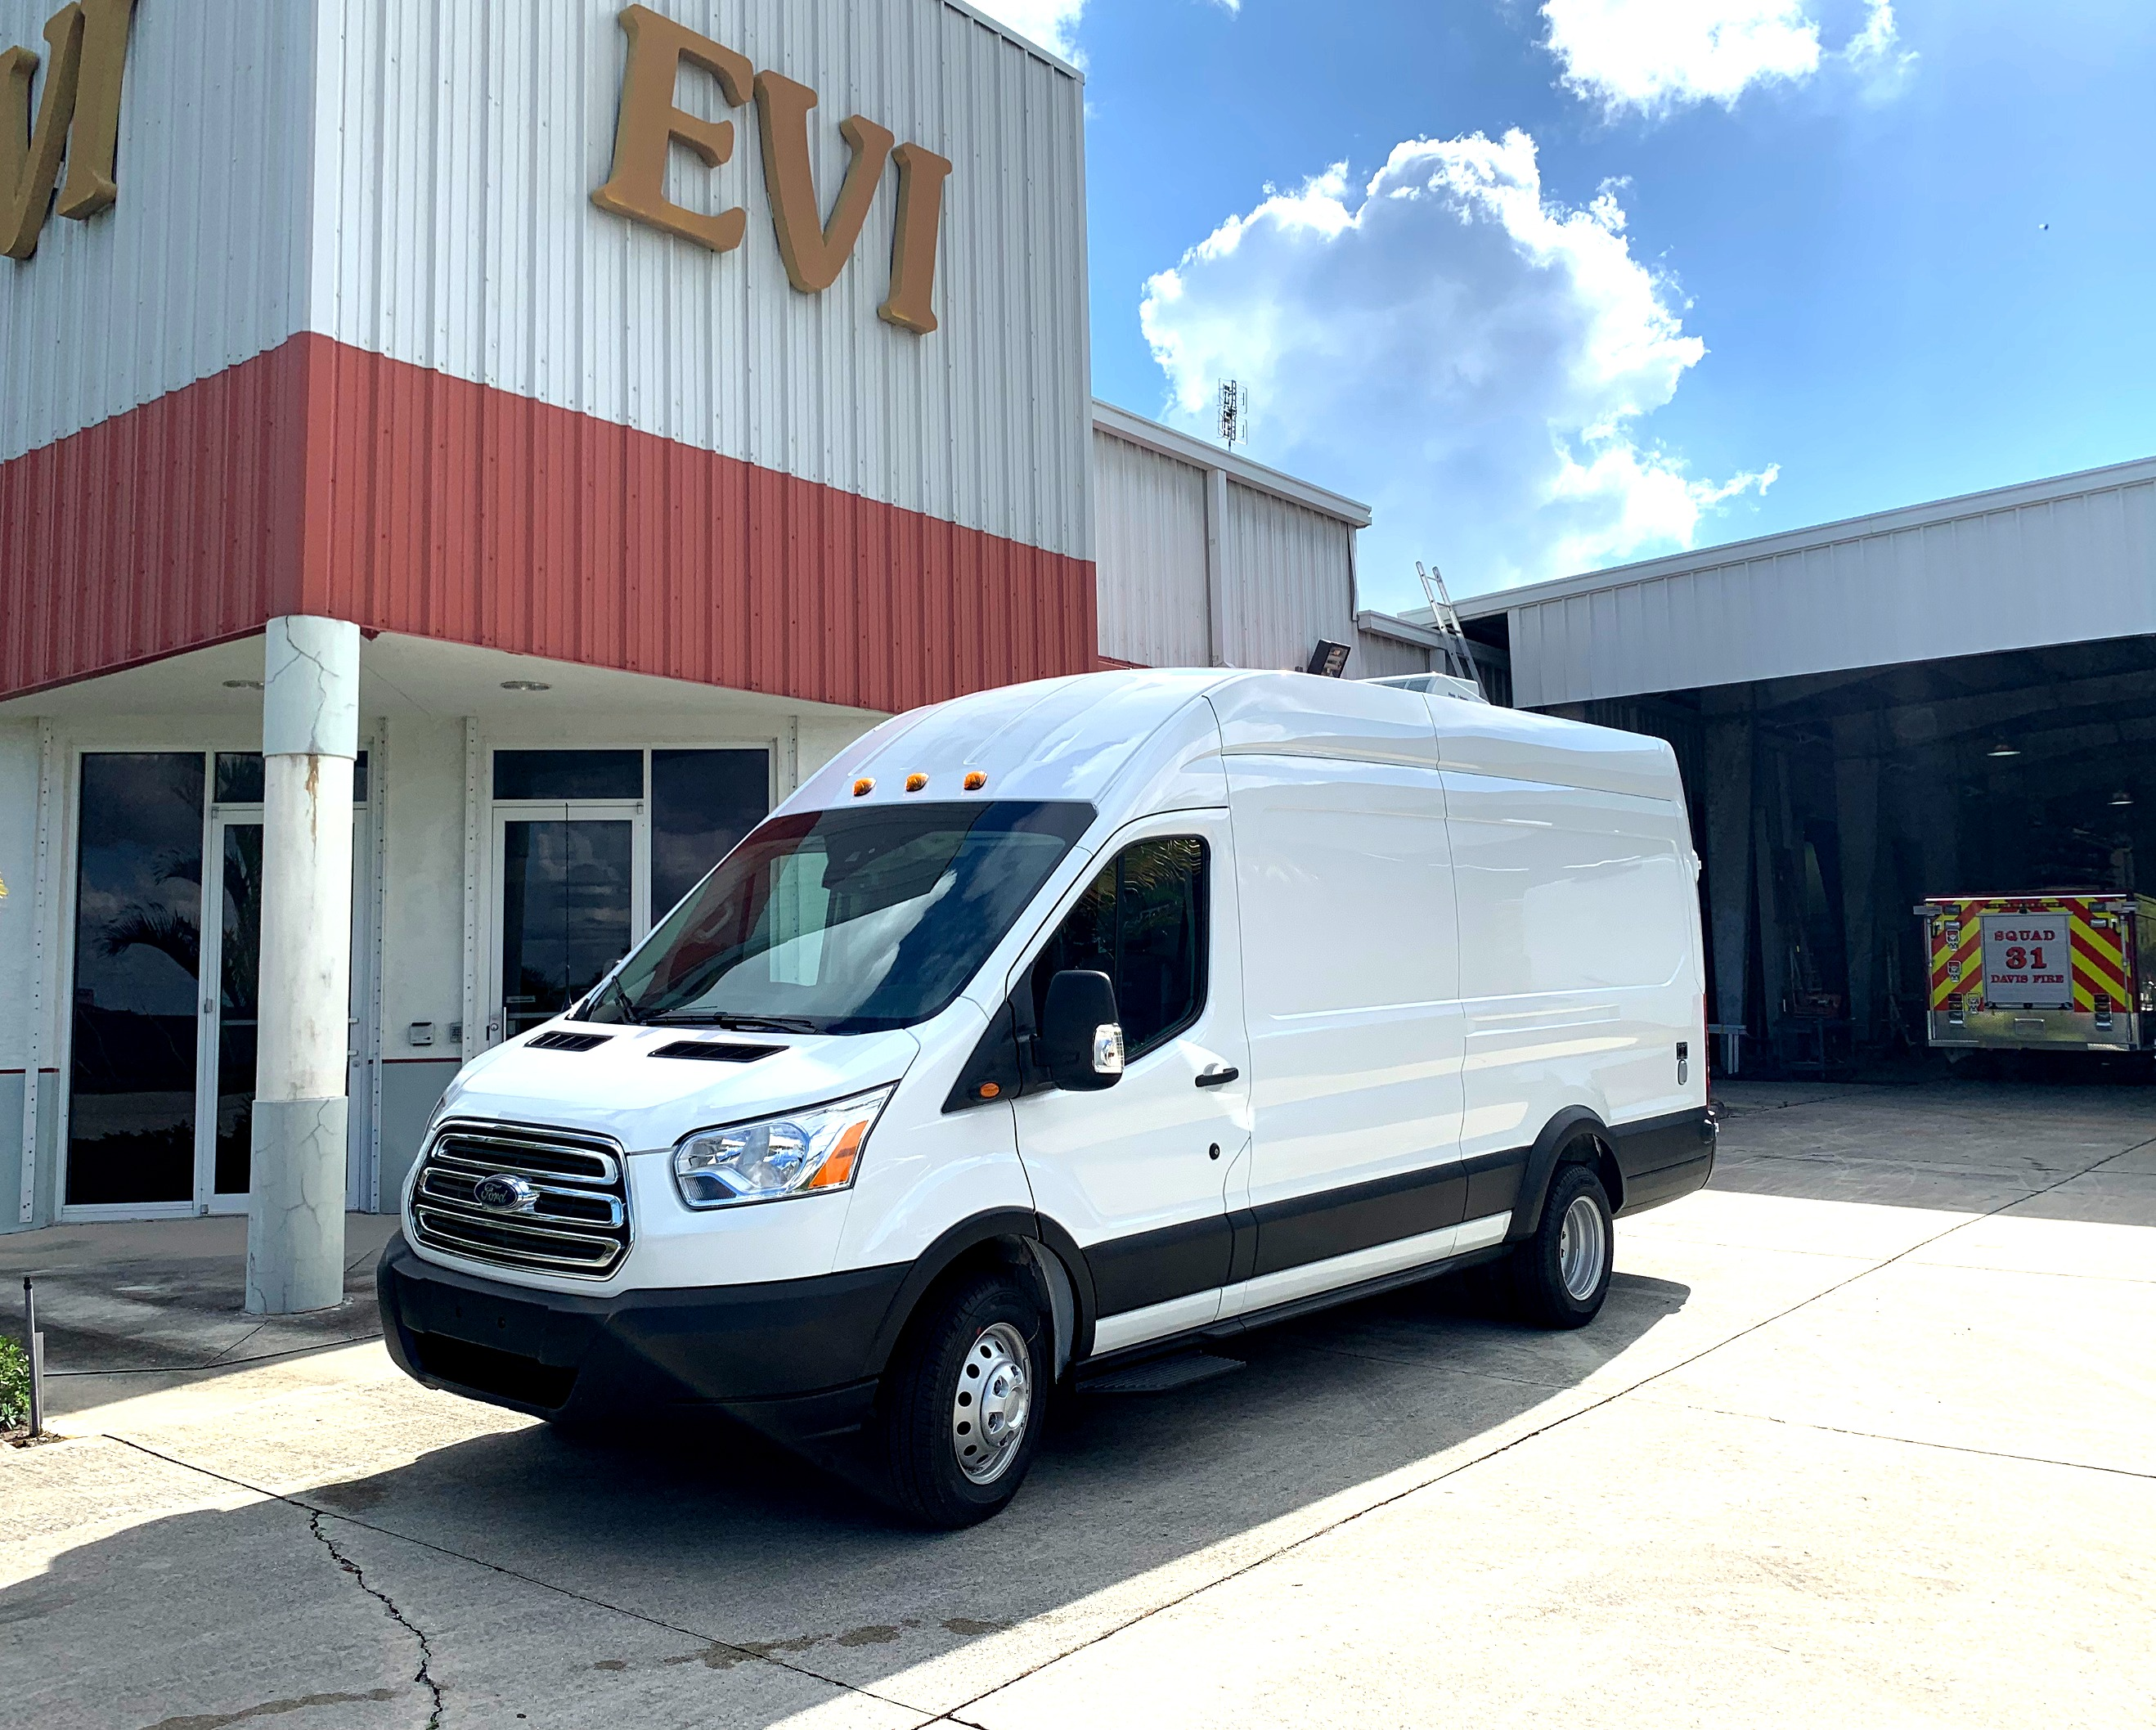 evi custom swat van conversion